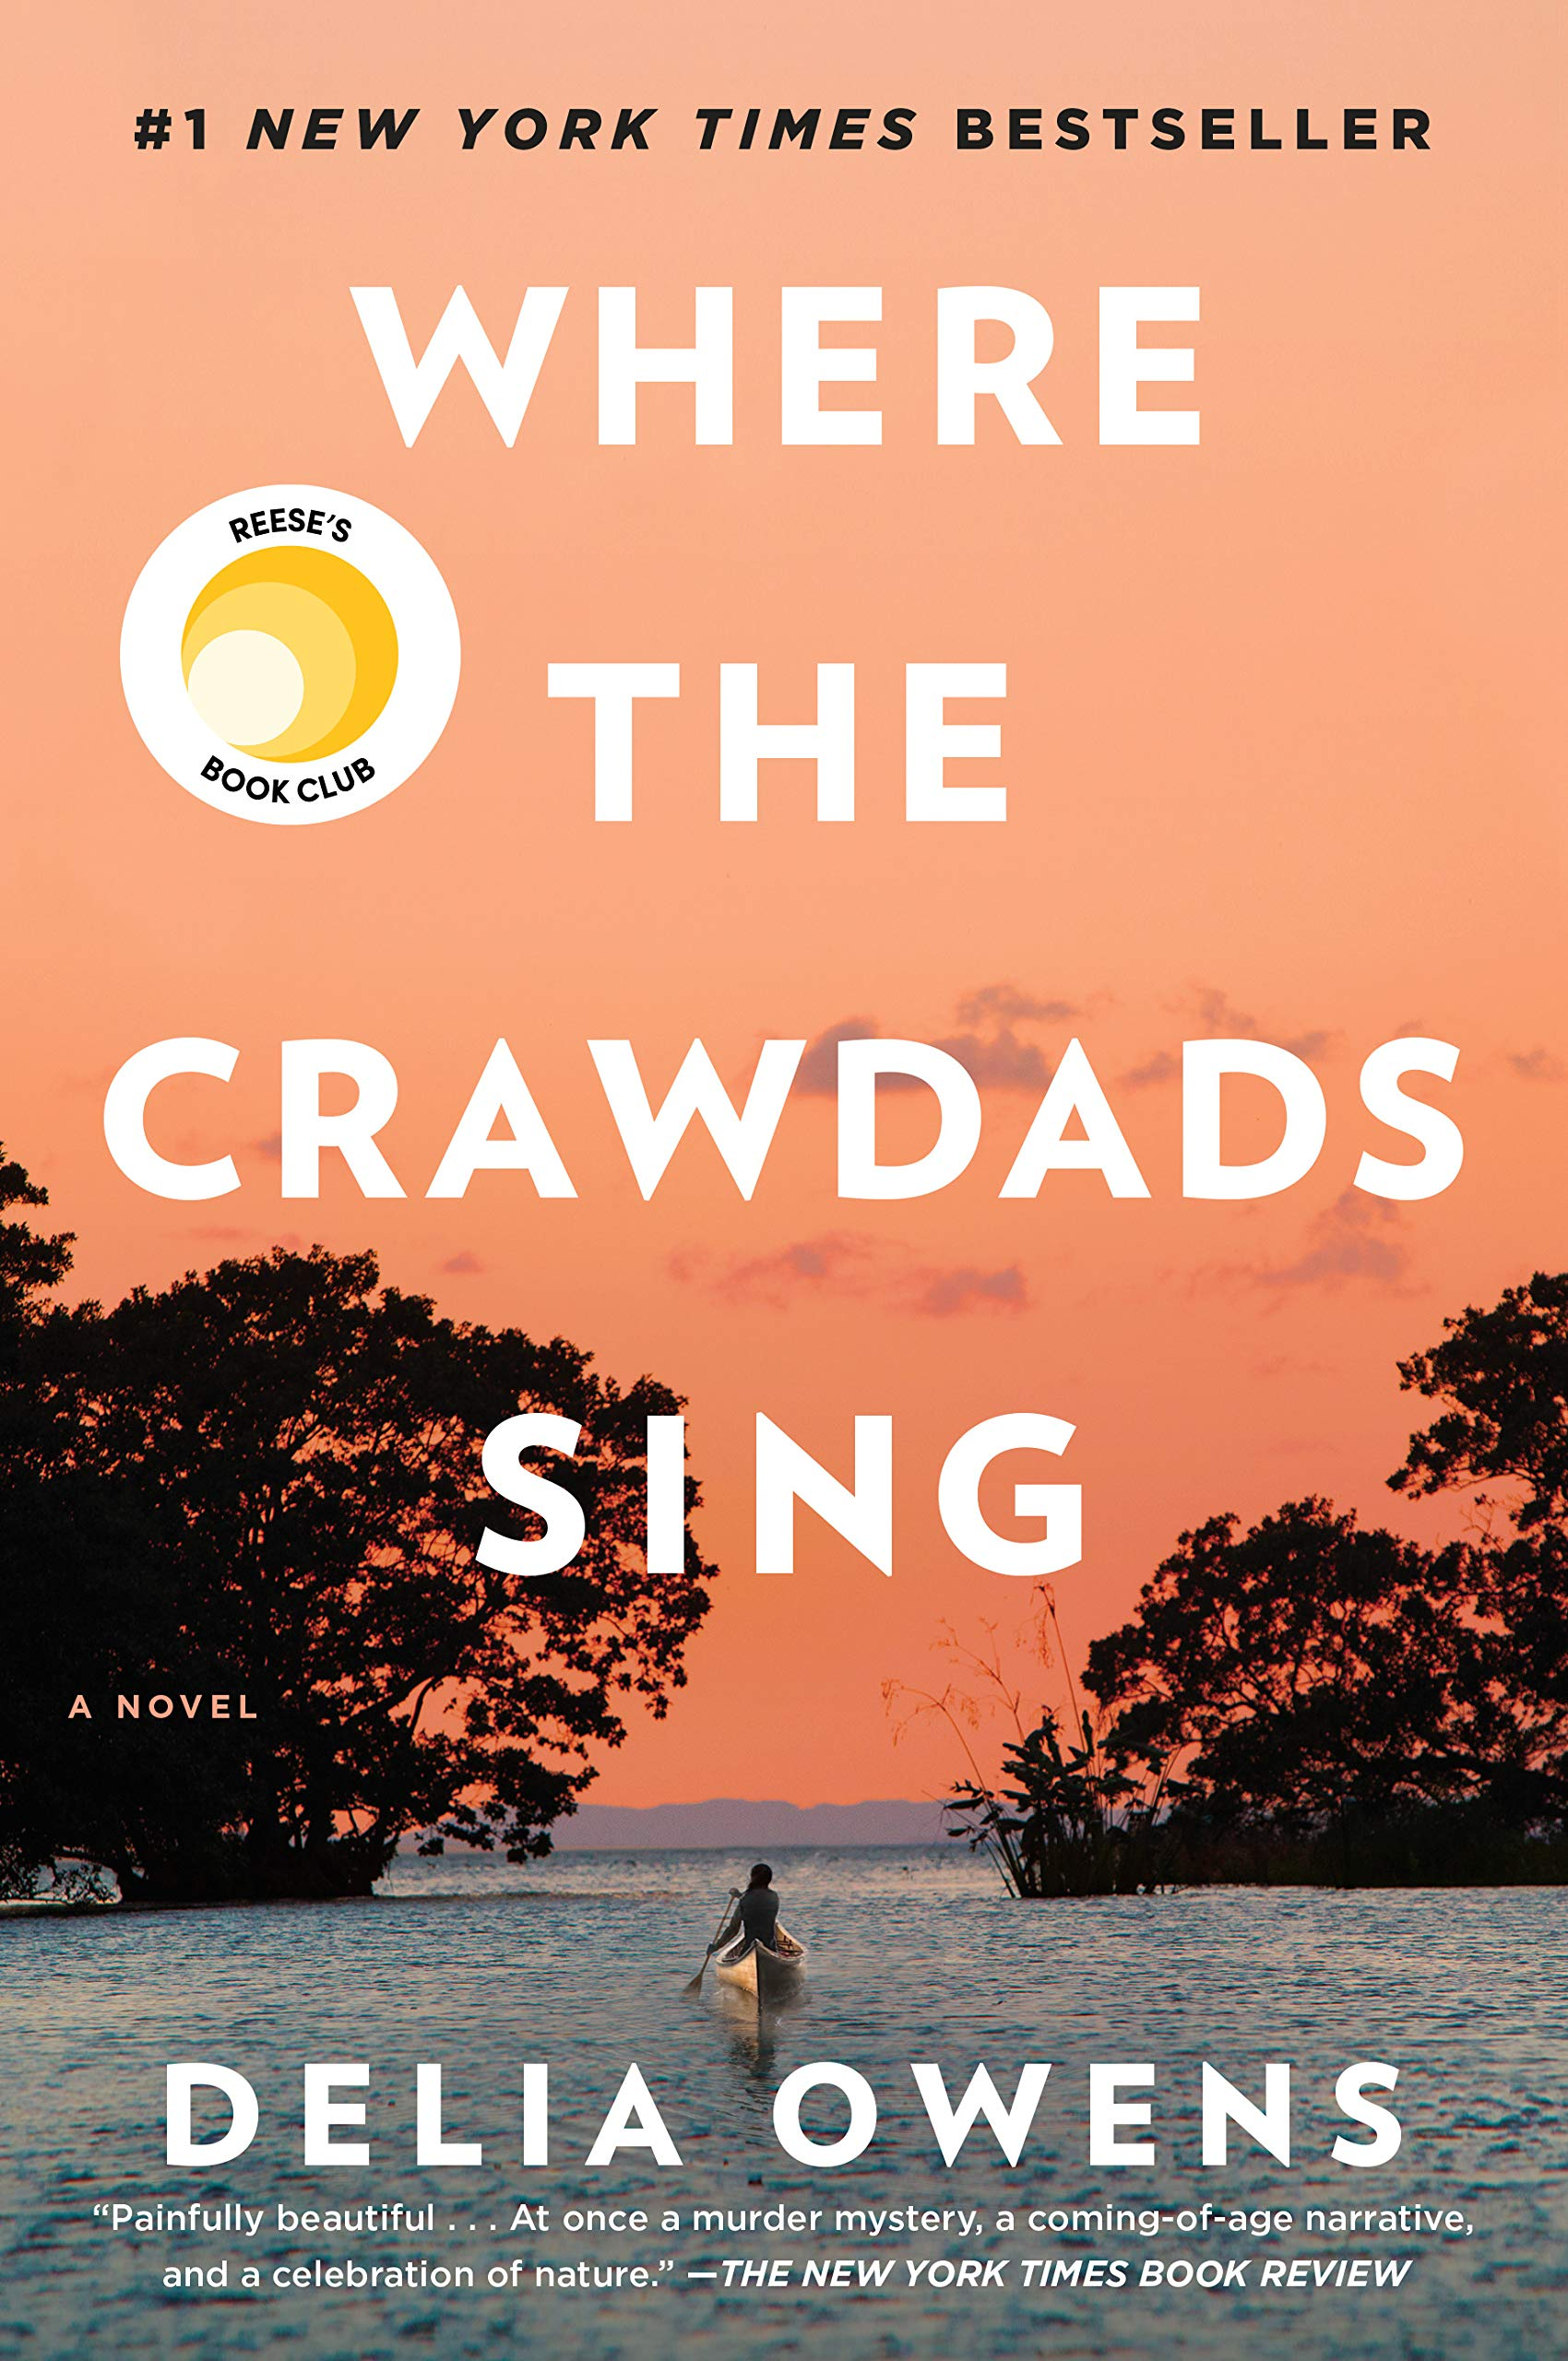 'Where the Crawdads Sing' Top Seller So Far in 2019